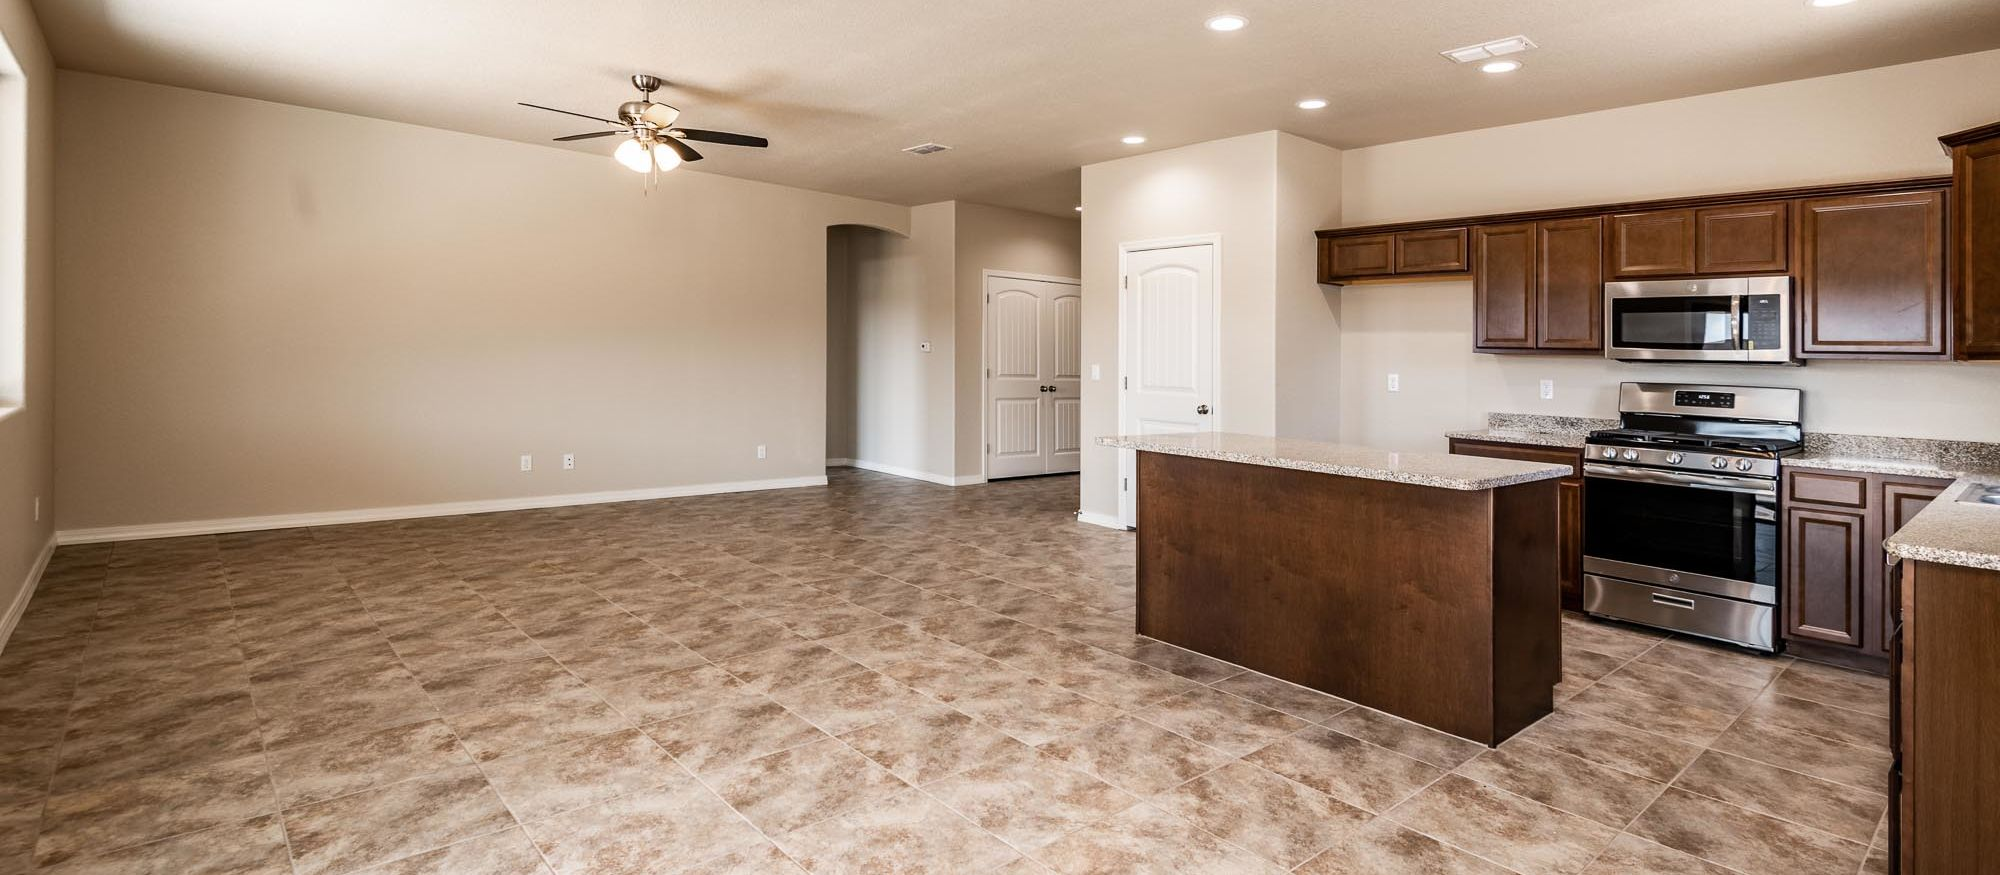 Kitchen featured in the Desert Rose 1706 By Angle Homes in Kingman-Lake Havasu City, AZ